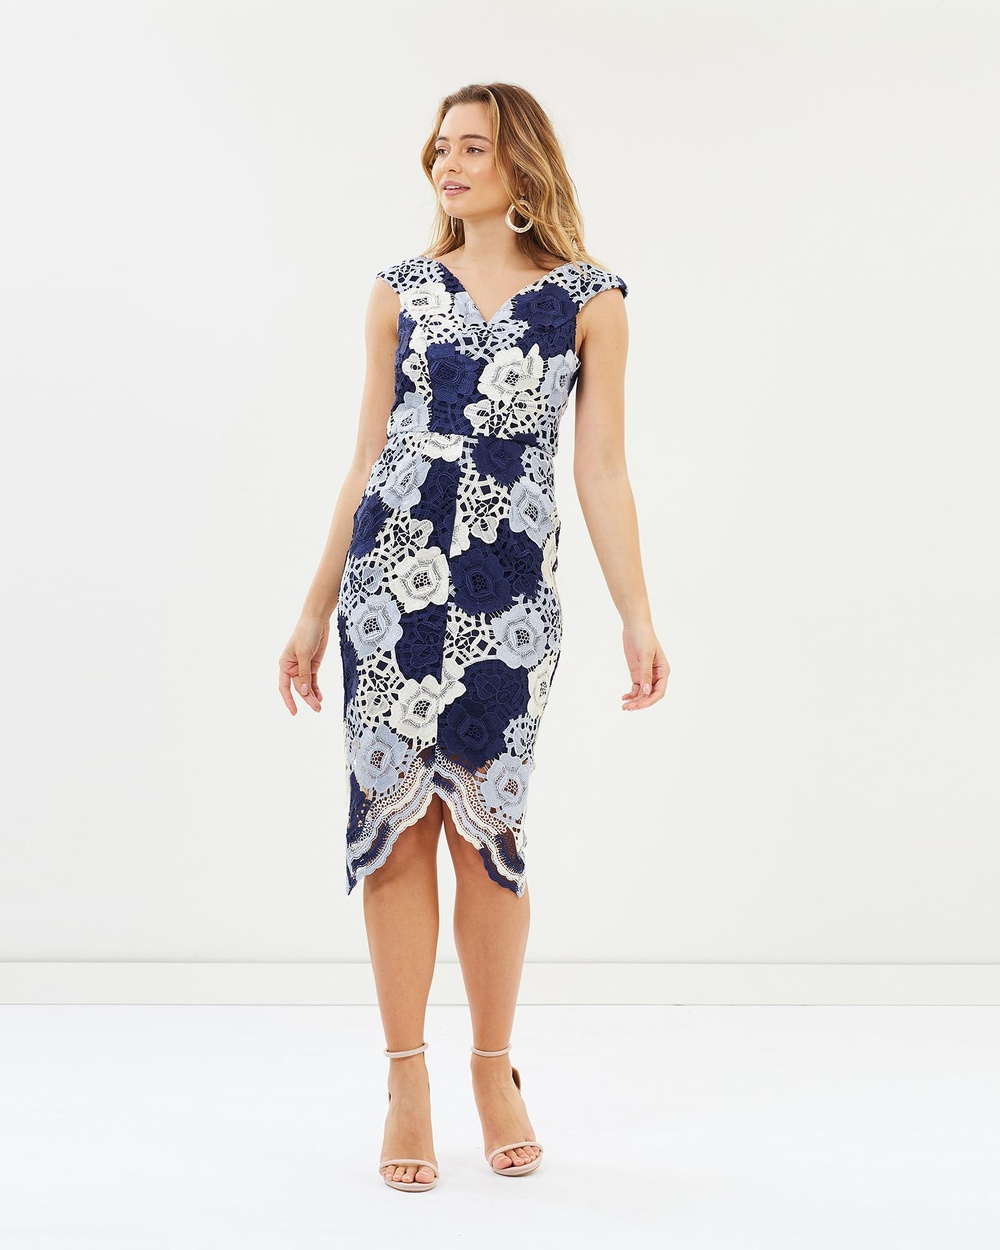 Romance by Honey and Beau Cora Dress Bridesmaid Dresses Blue Print Cora Dress